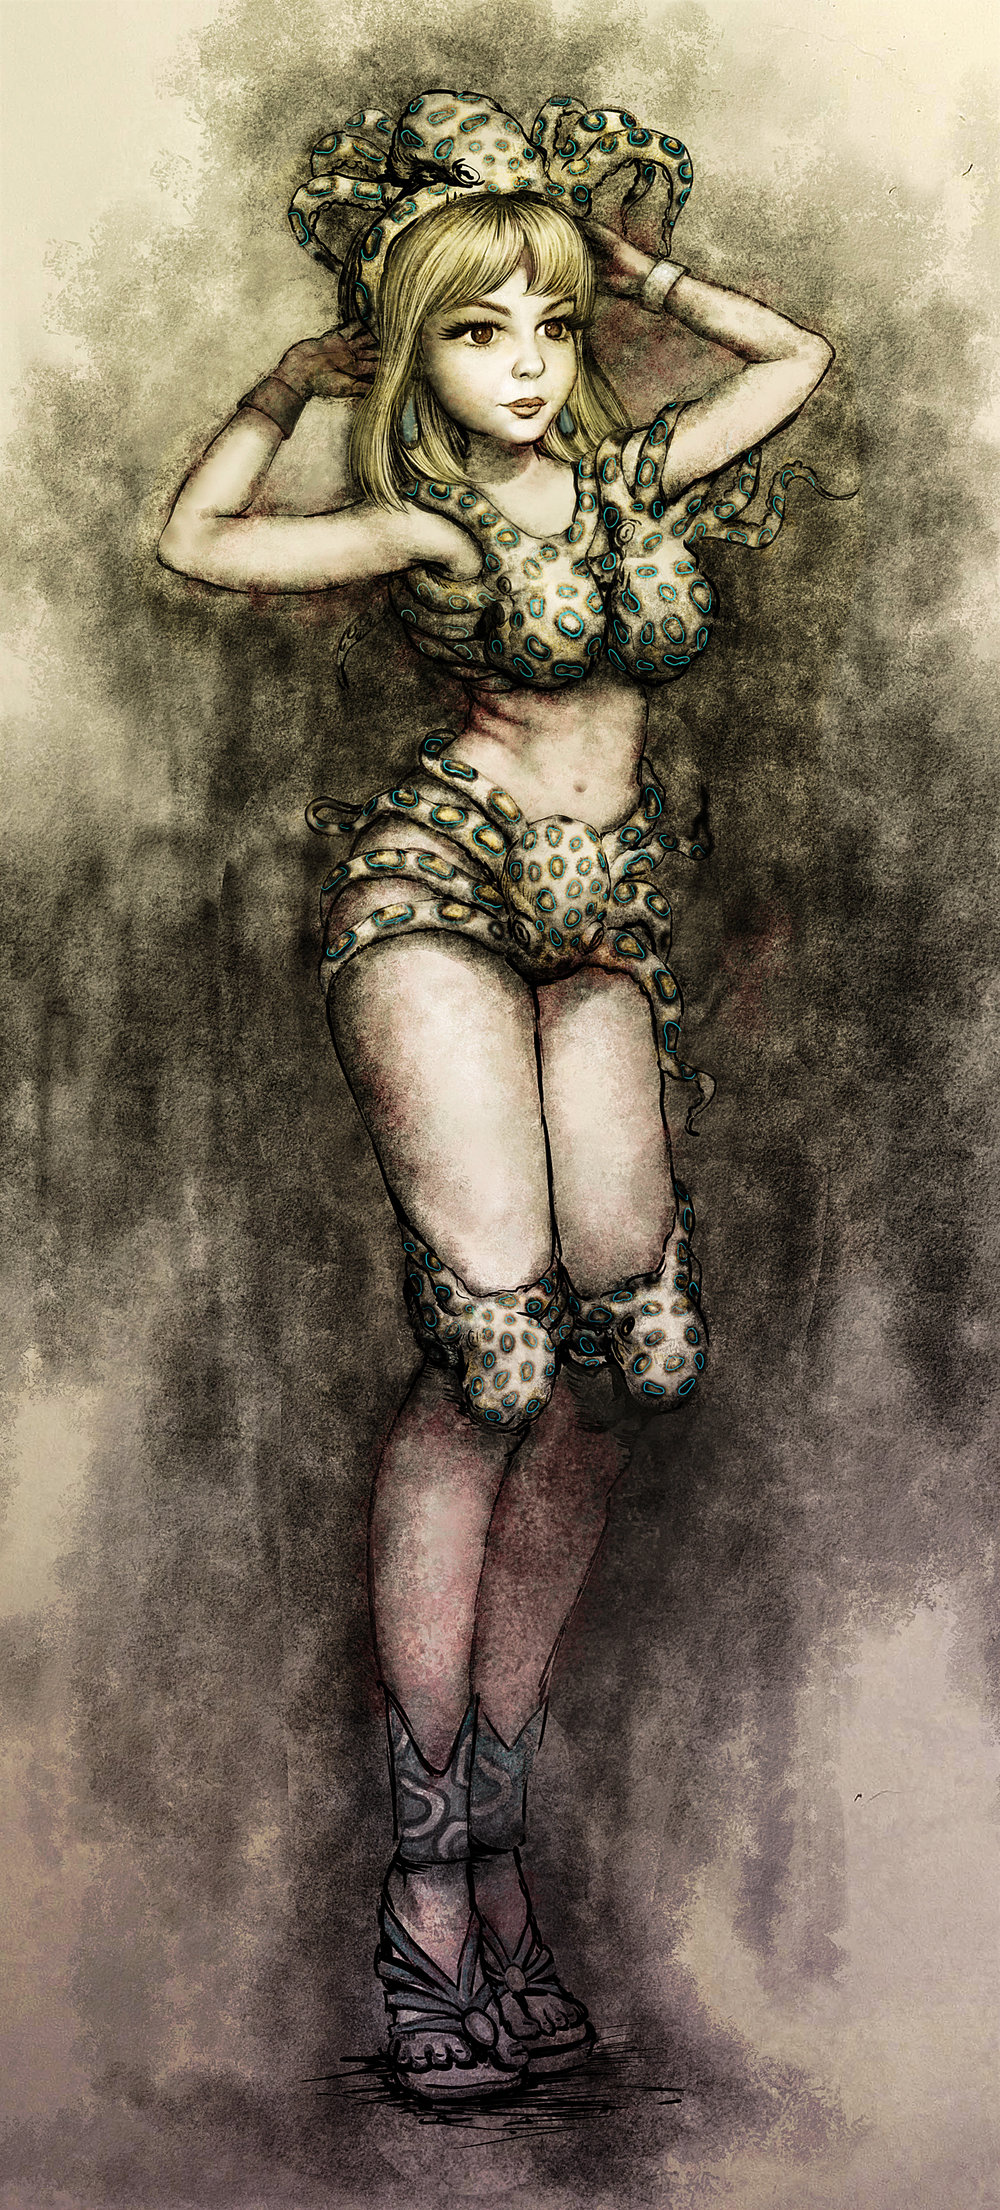 BLUE RINGS–Graphite and digital color. Conceptual illustration for outfit design inspired by the blue ringed octopus.